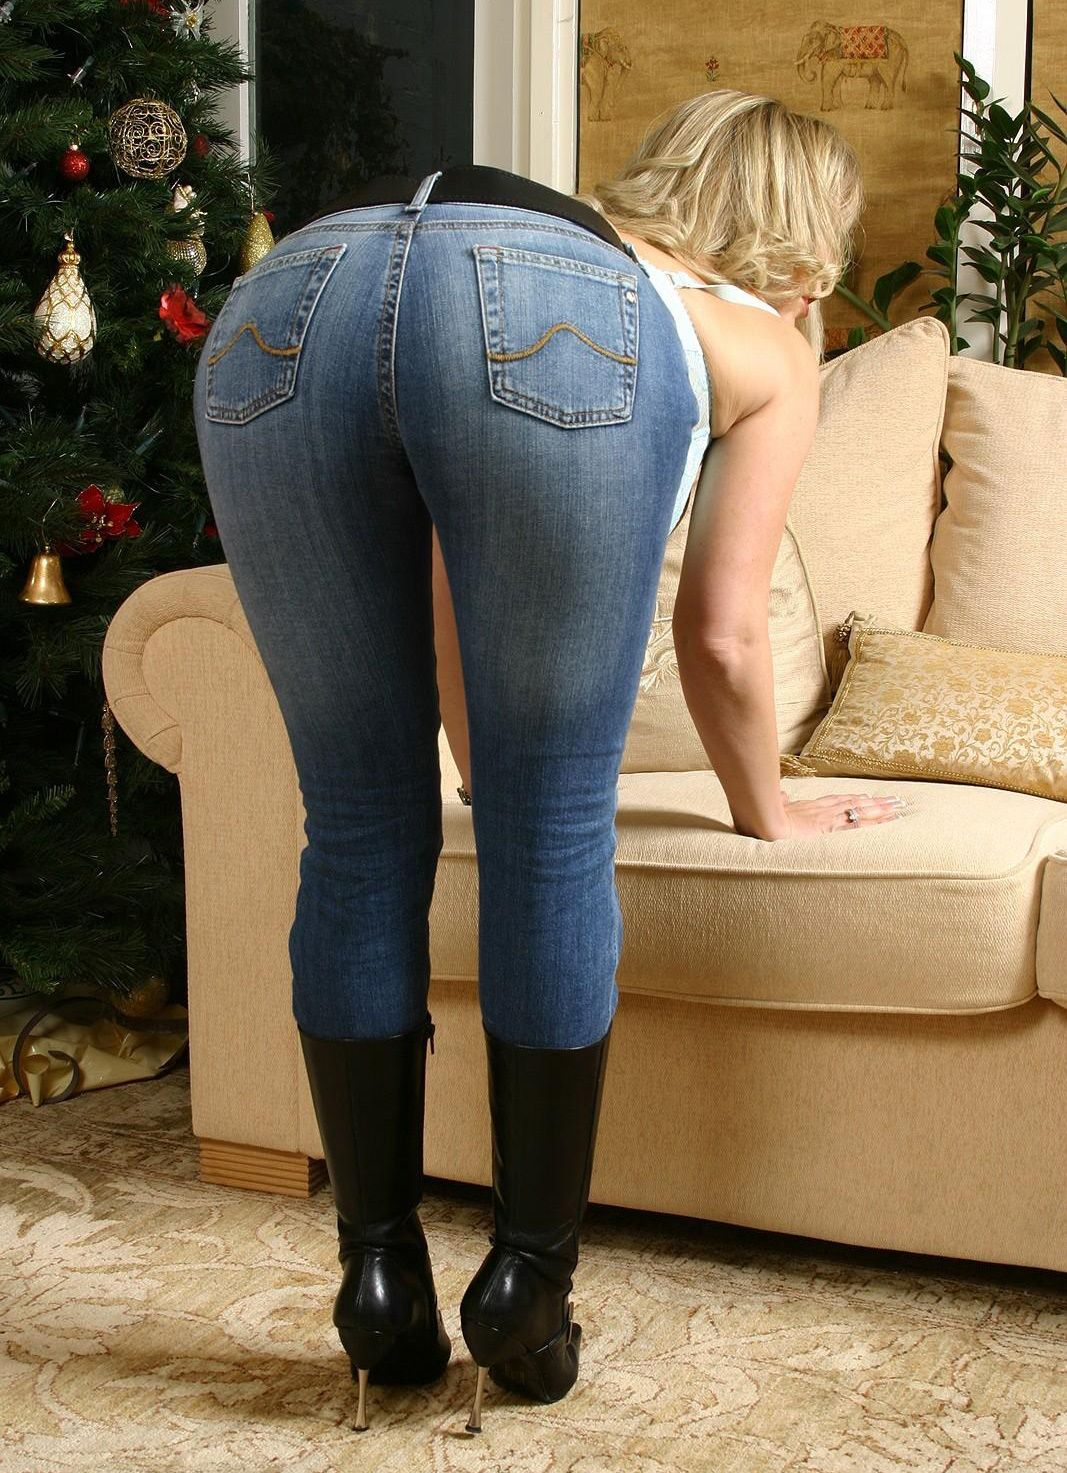 Curious sexy ass in jeans pussy opinion you